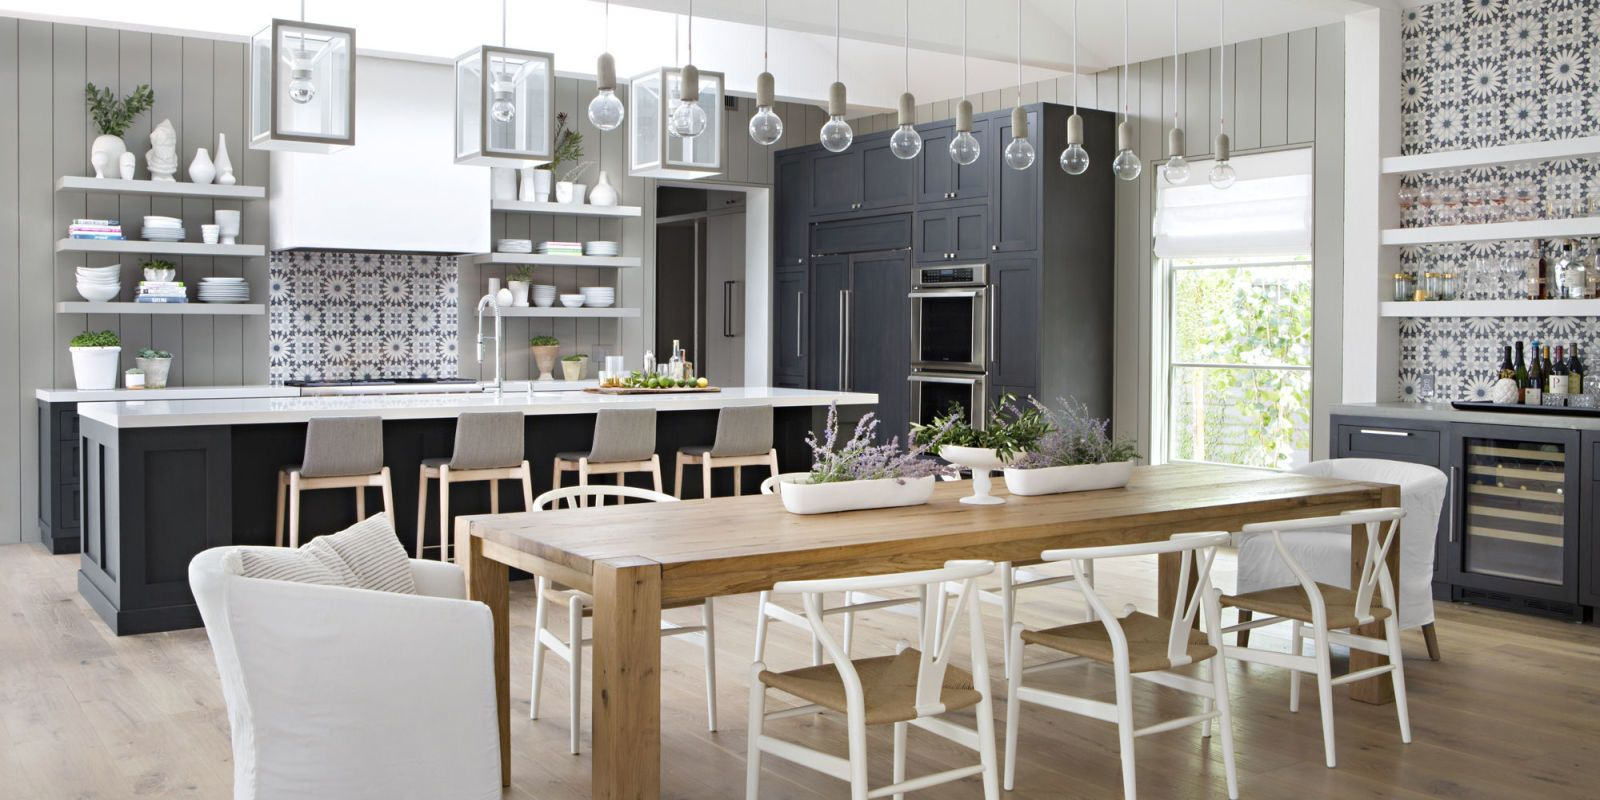 Merveilleux But The Duou0027s Easy Living Environments, Like This Kitchen And Pavilion  Combo In A New Home ...